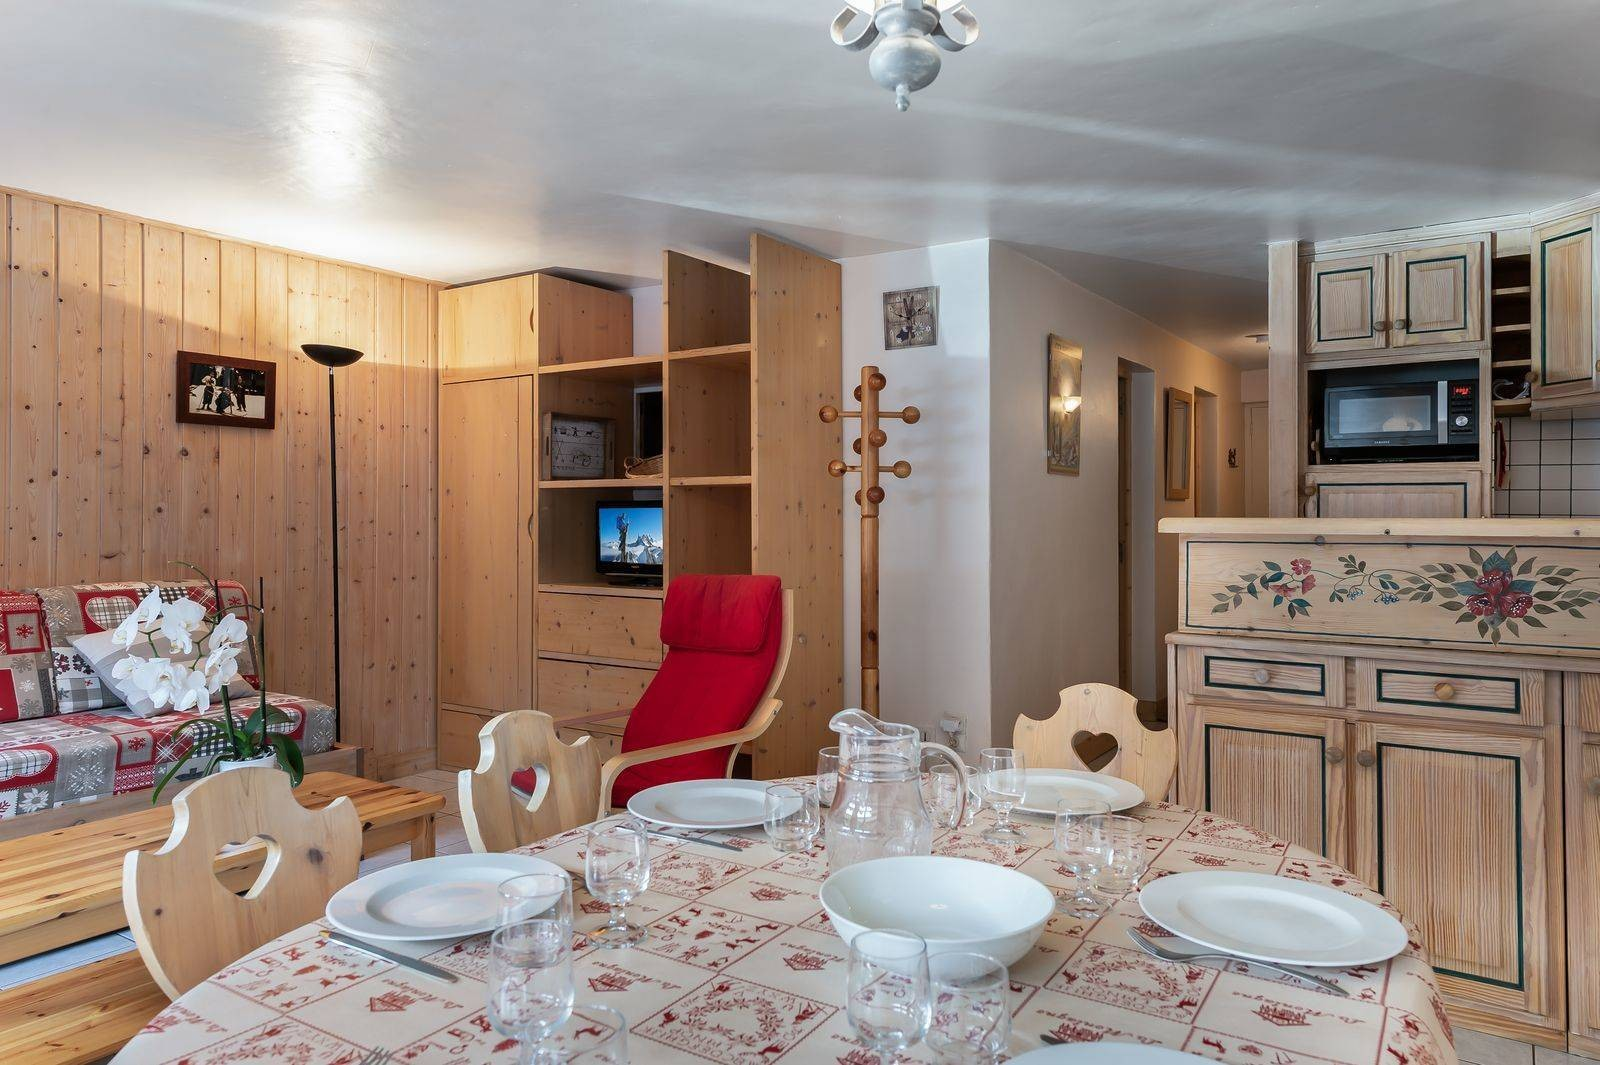 Courchevel 1850 Location Appartement Luxe Cetonite Salle A Manger